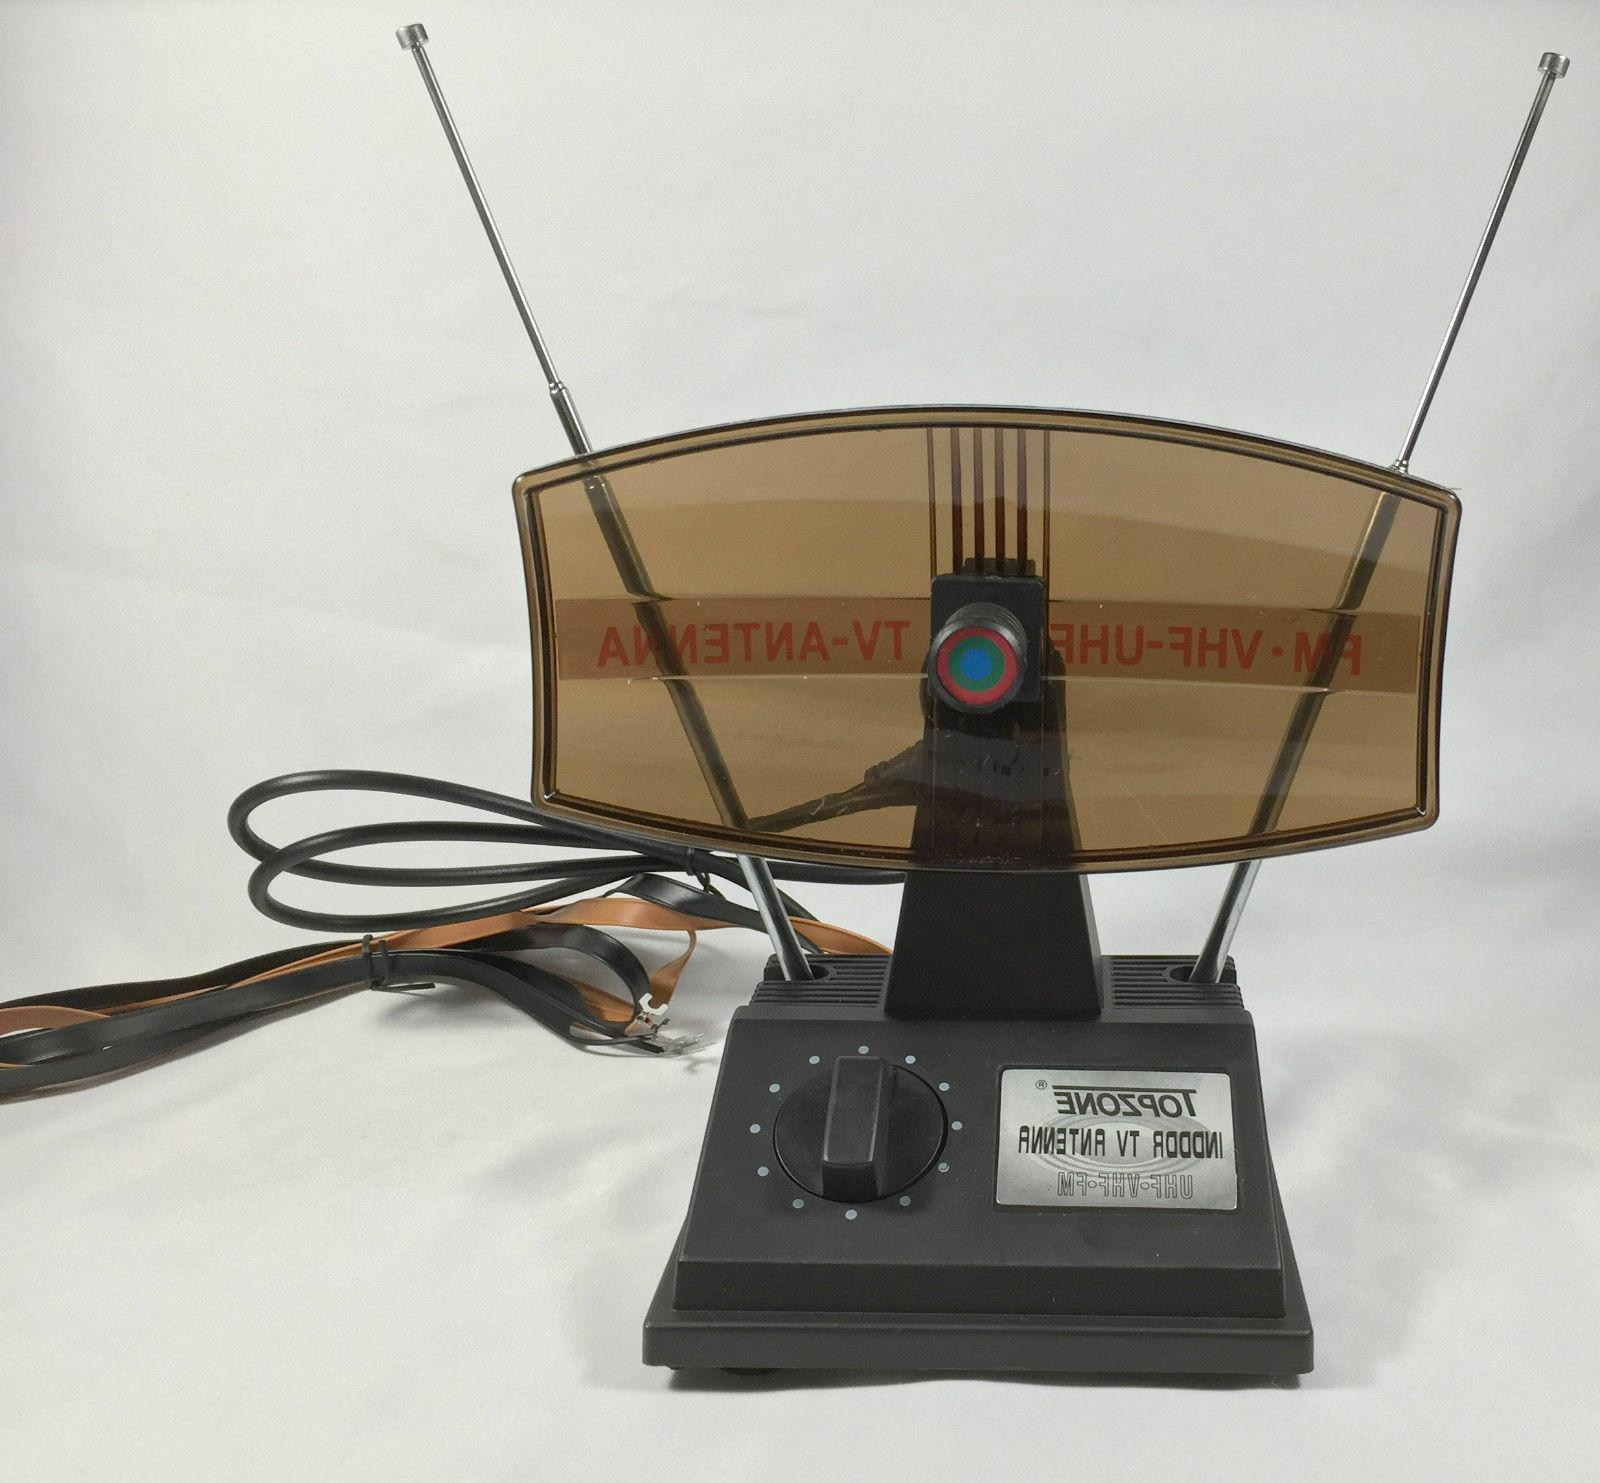 Rotating Antenna Rabbit Ear for UHF VHF Cable AD-30019